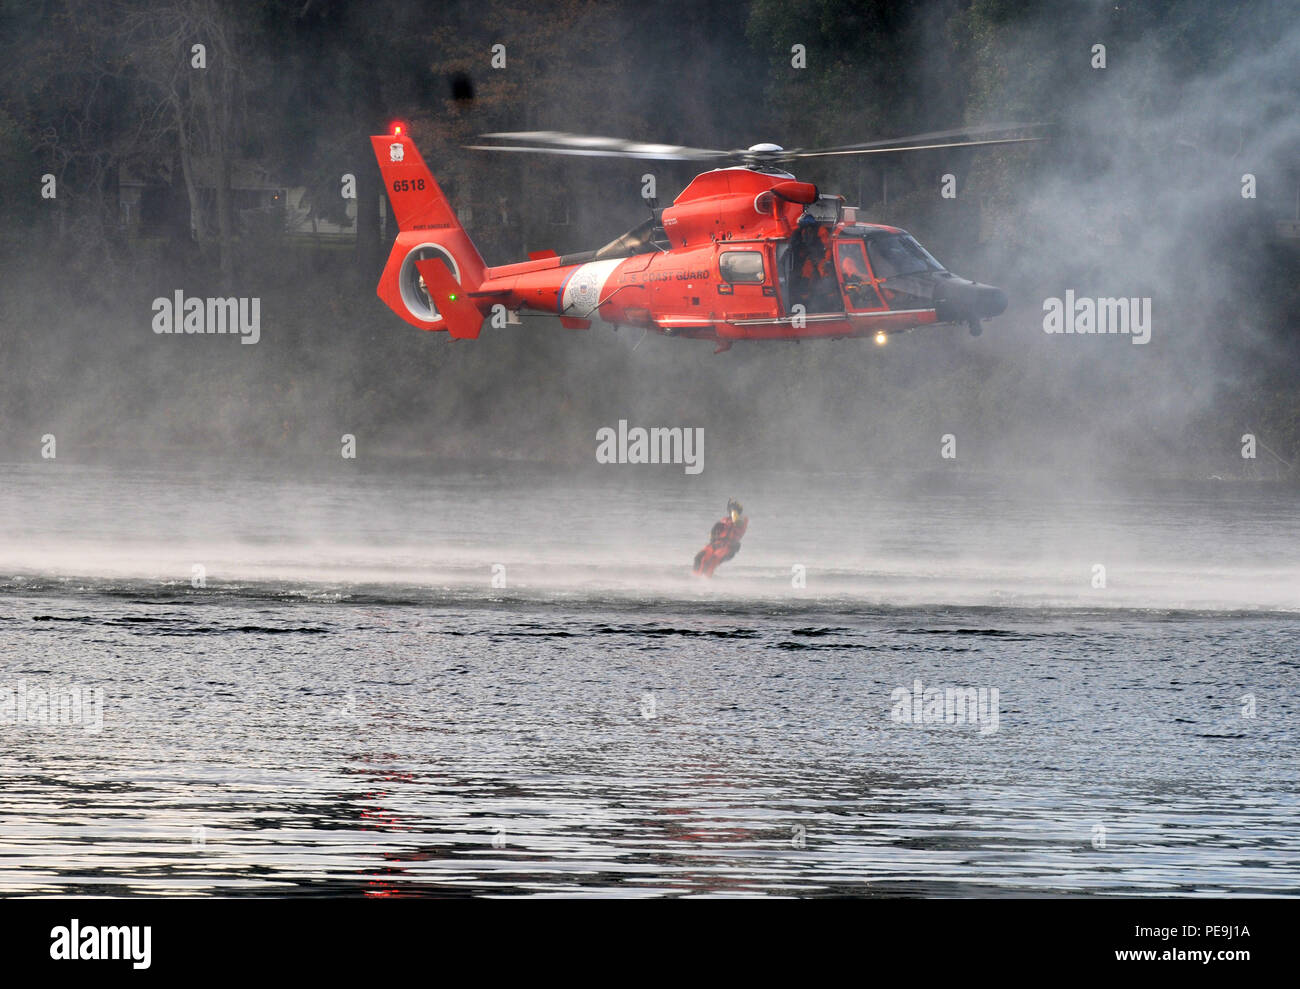 A U.S. Coast Guardsmen drops into waters during extraction training as part of the Disaster Management Exchange event on Joint Base Lewis-McChord, Wash., Nov. 20, 2015. The DME is a U.S. Pacific-hosted exchange focused on providing international humanitarian assistance and disaster relief to countries in the Indo-Pacific that could be affected by natural disasters. (Photos by Sgt. 1st Class Andrew Porch, 28th Public Affairs Detachment) - Stock Image